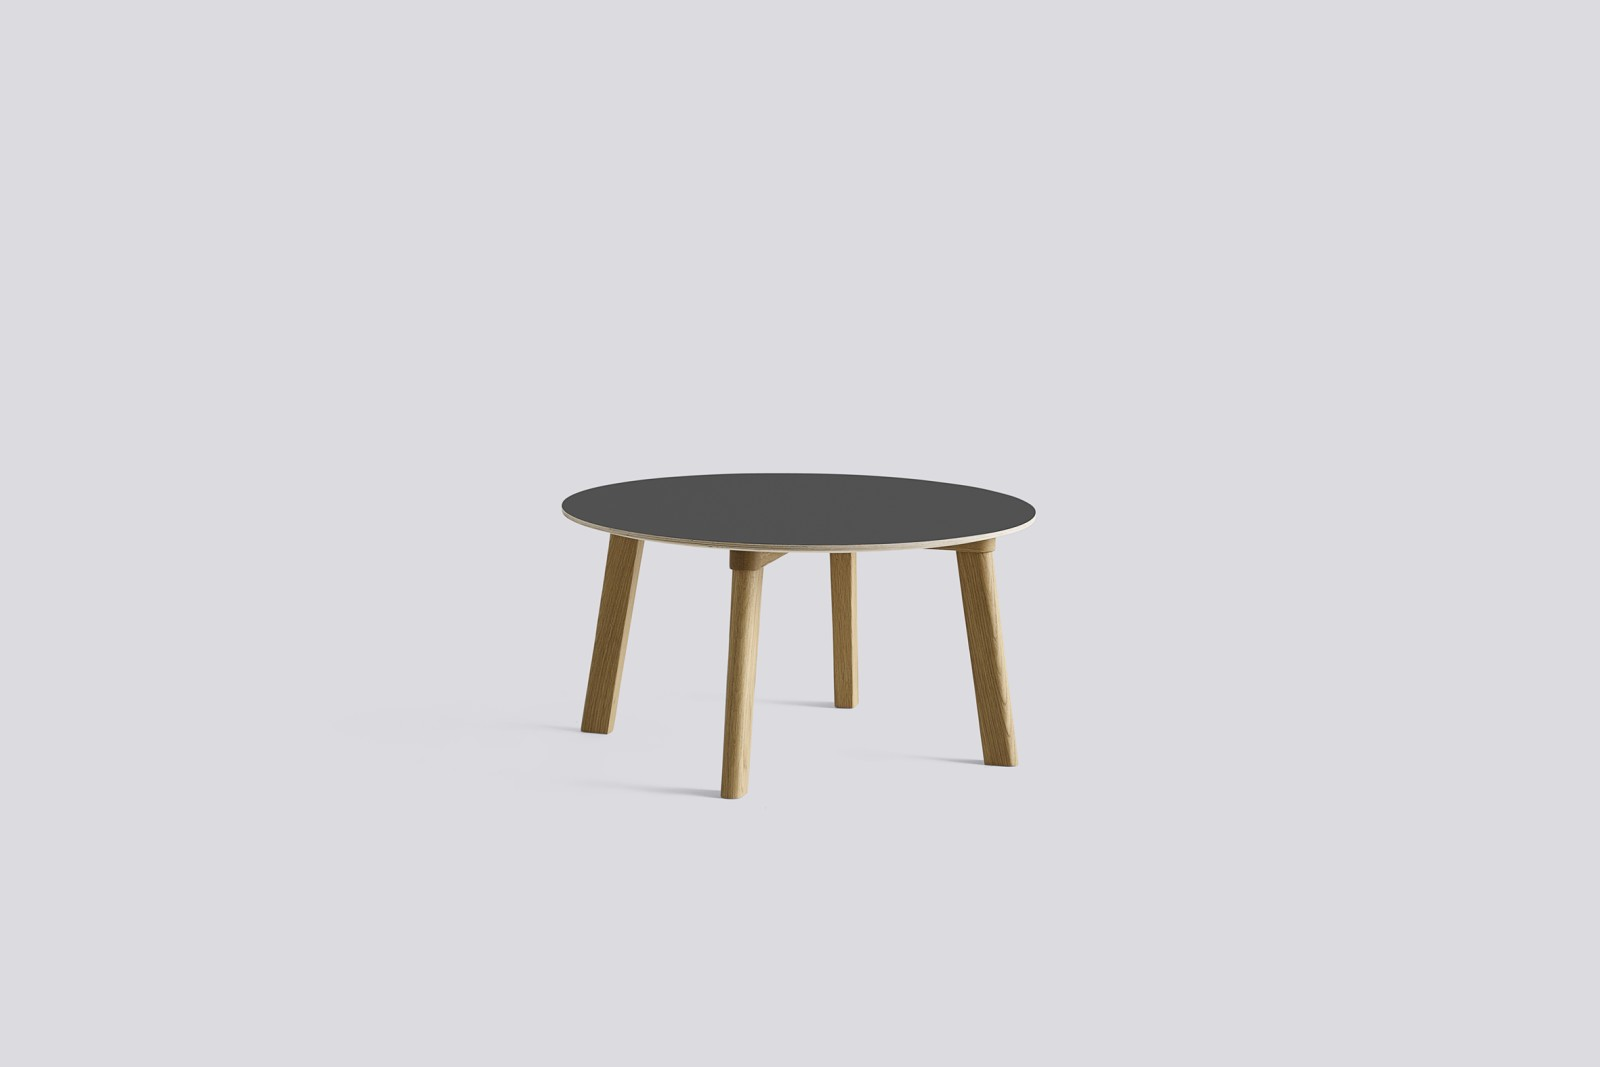 Copenhague Deux (CPH 250) Round Coffee Table Stone Grey Laminate Top, Matt Lacquered Beech Base